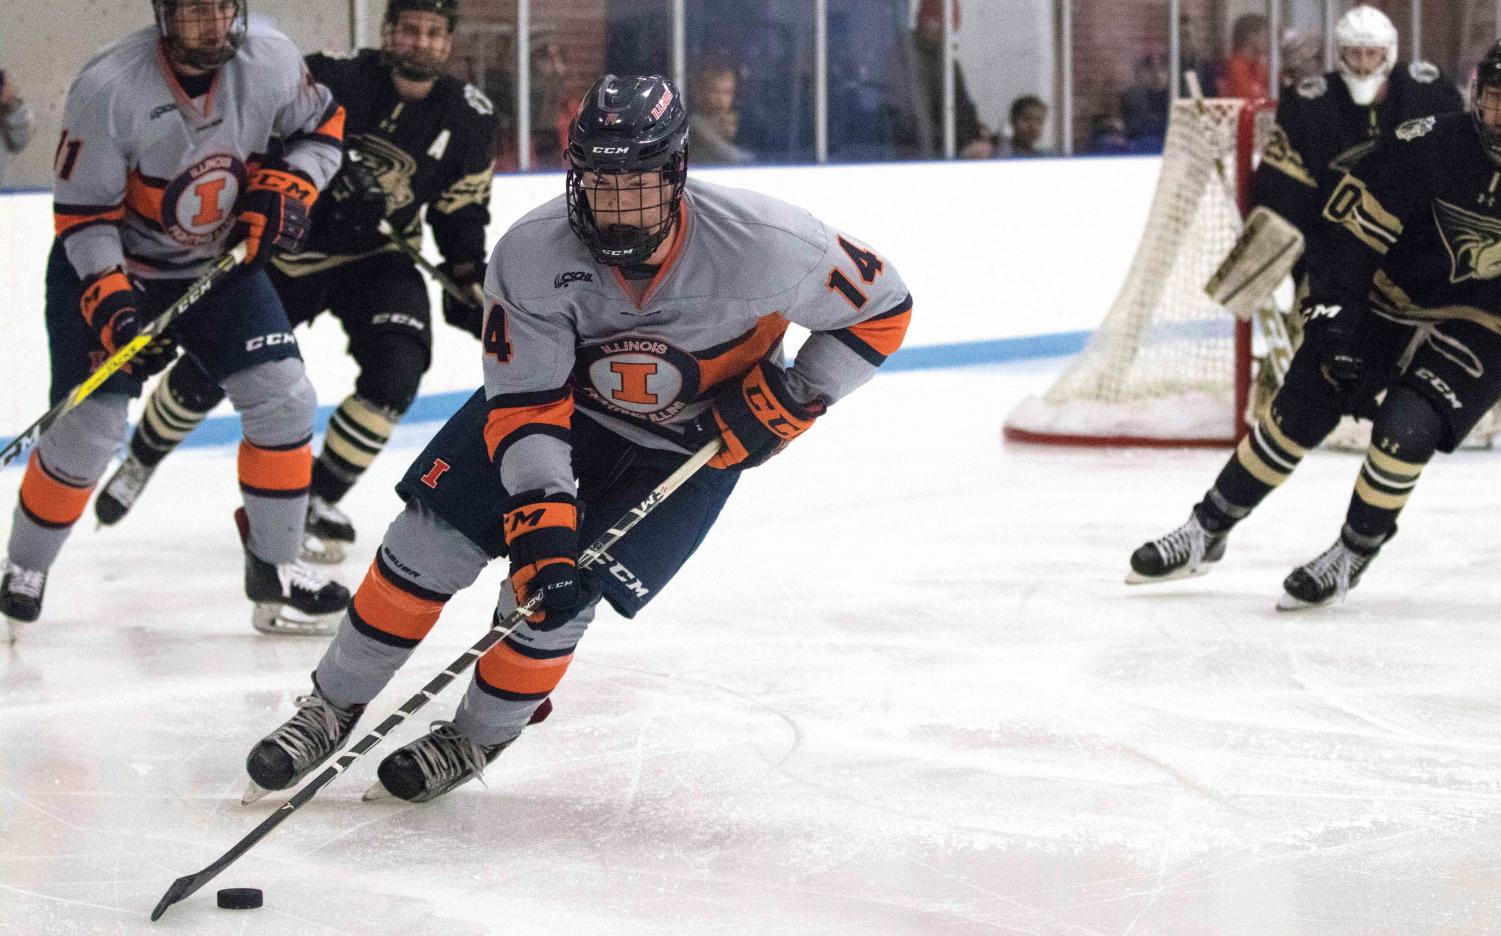 Neil Novosel (14) skates past Lindenwood's players to gain possession of the puck at the Ice Arena on Friday, Dec. 1.  Illini won in overtime 2-1.